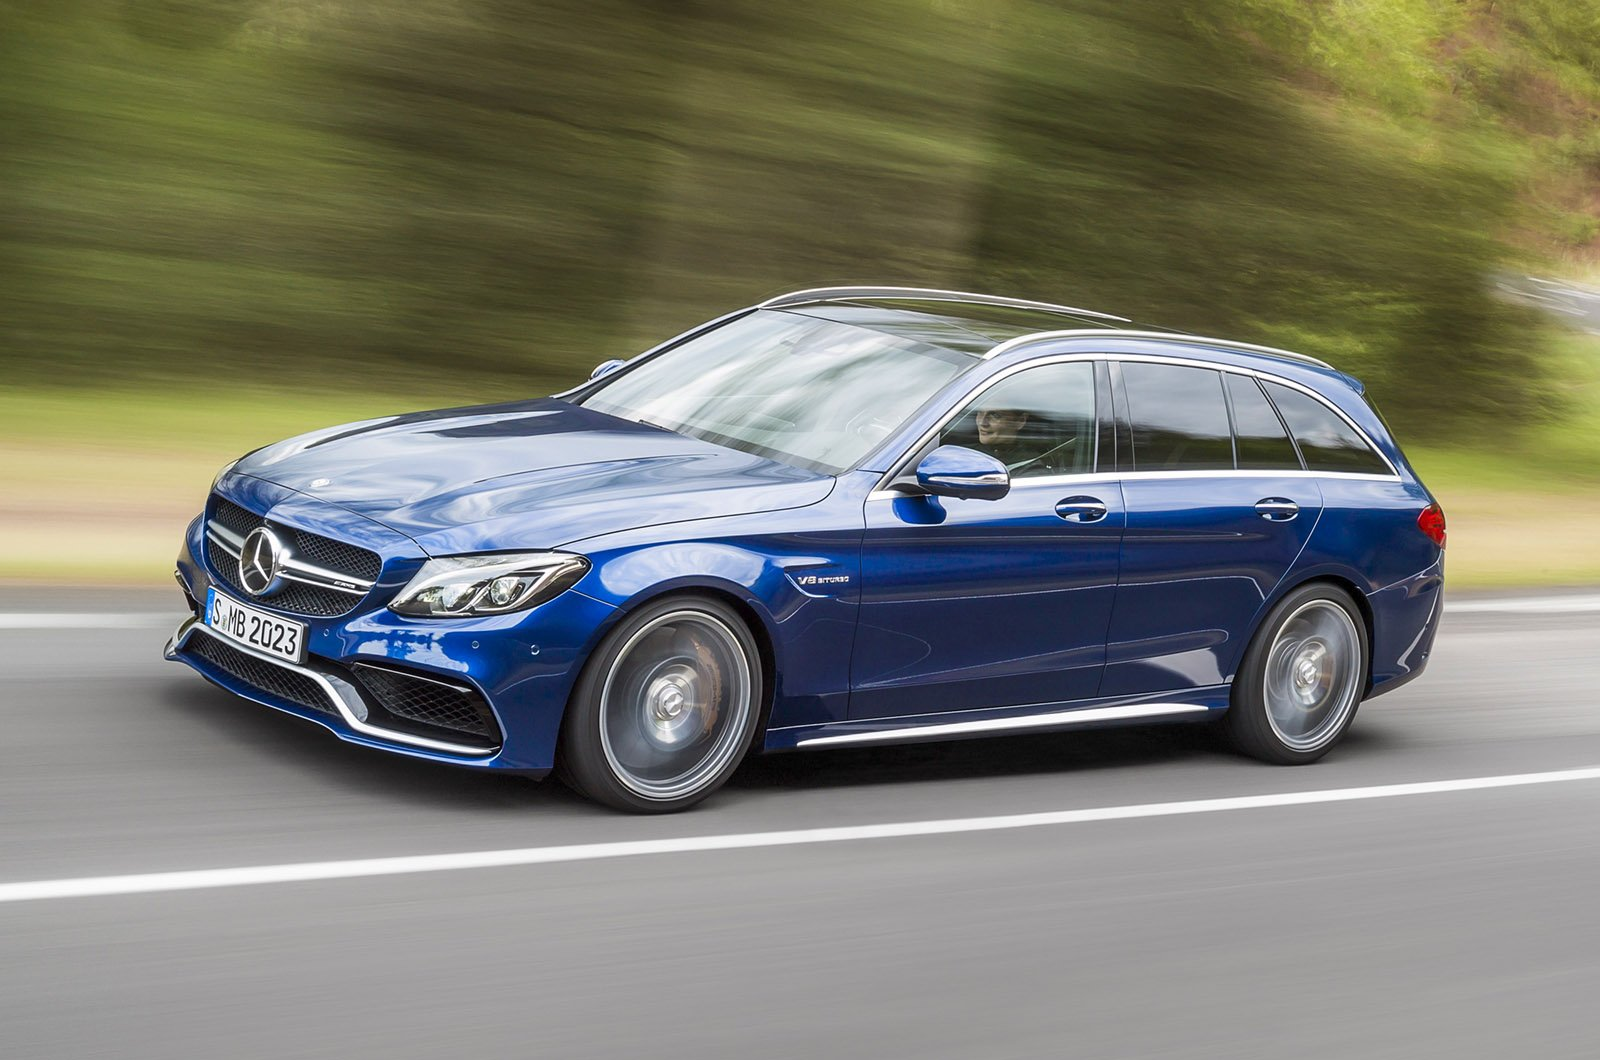 Mercedes benz c63 amg station wagon 2015 blue wallpaper for Mercedes benz c63 for sale